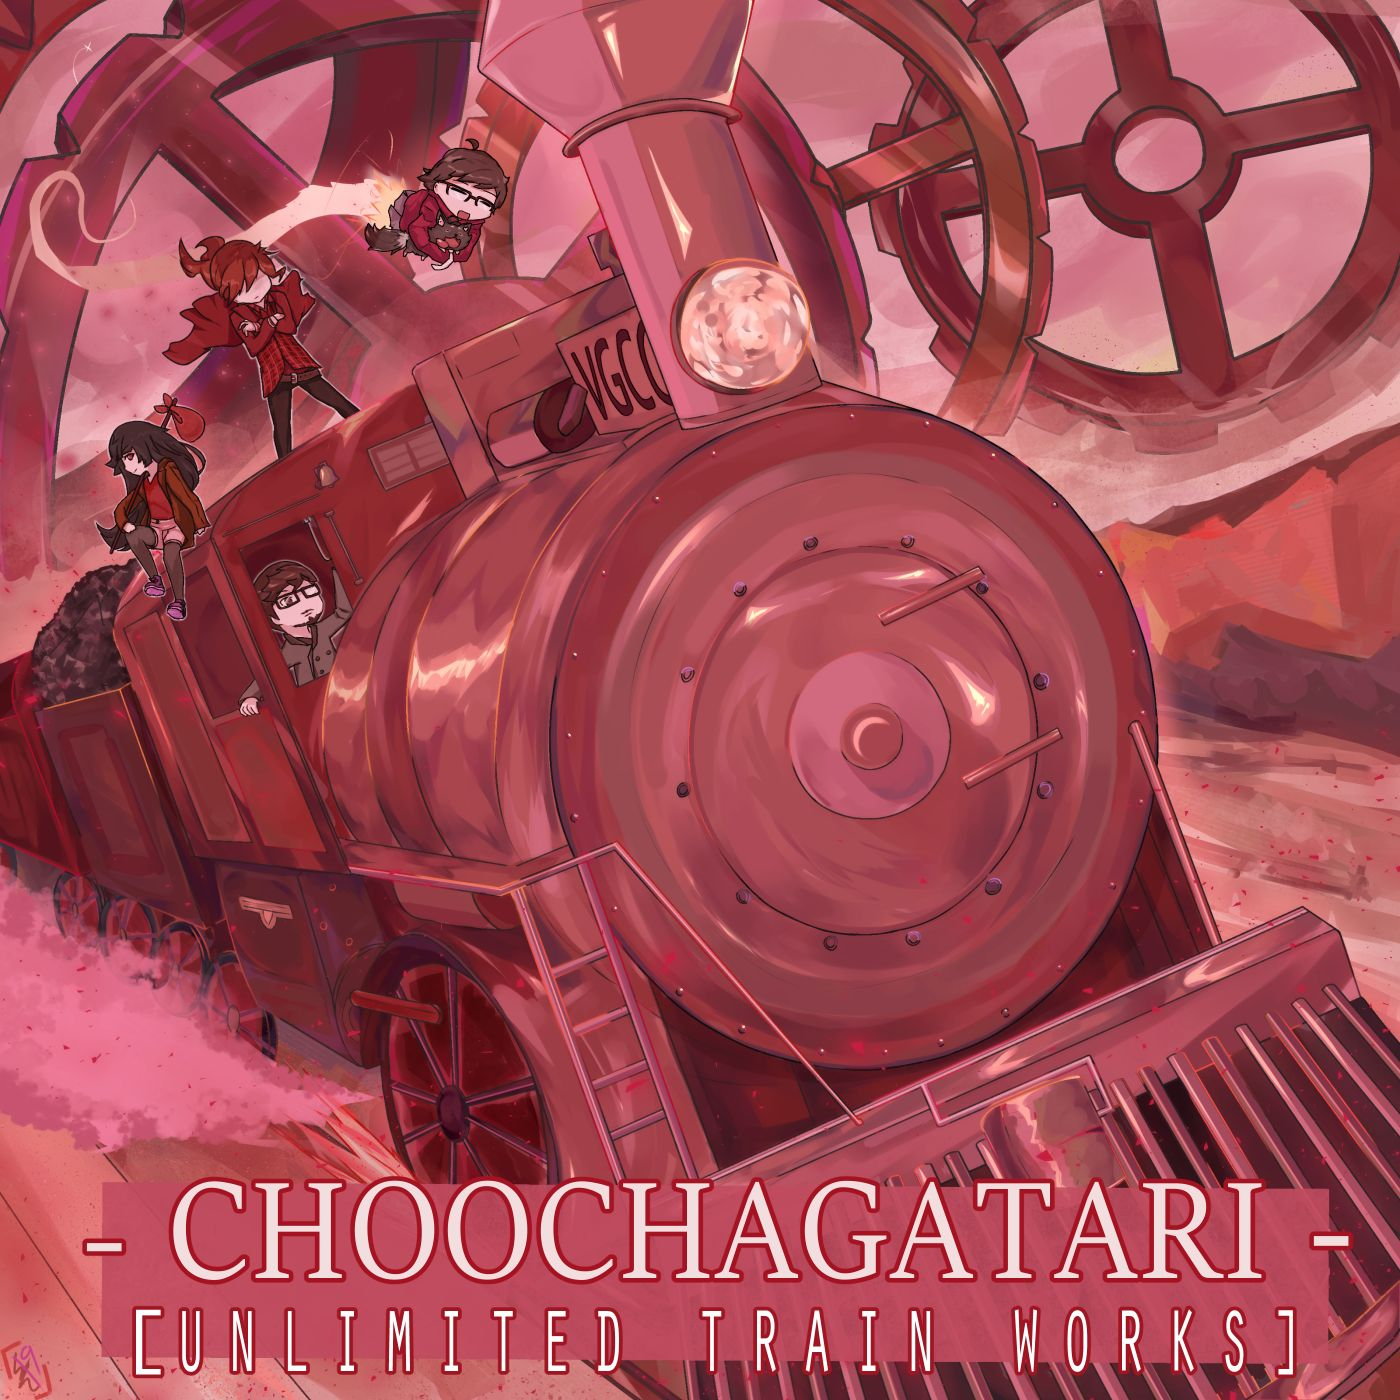 Choochagatari: Unlimited Train Works